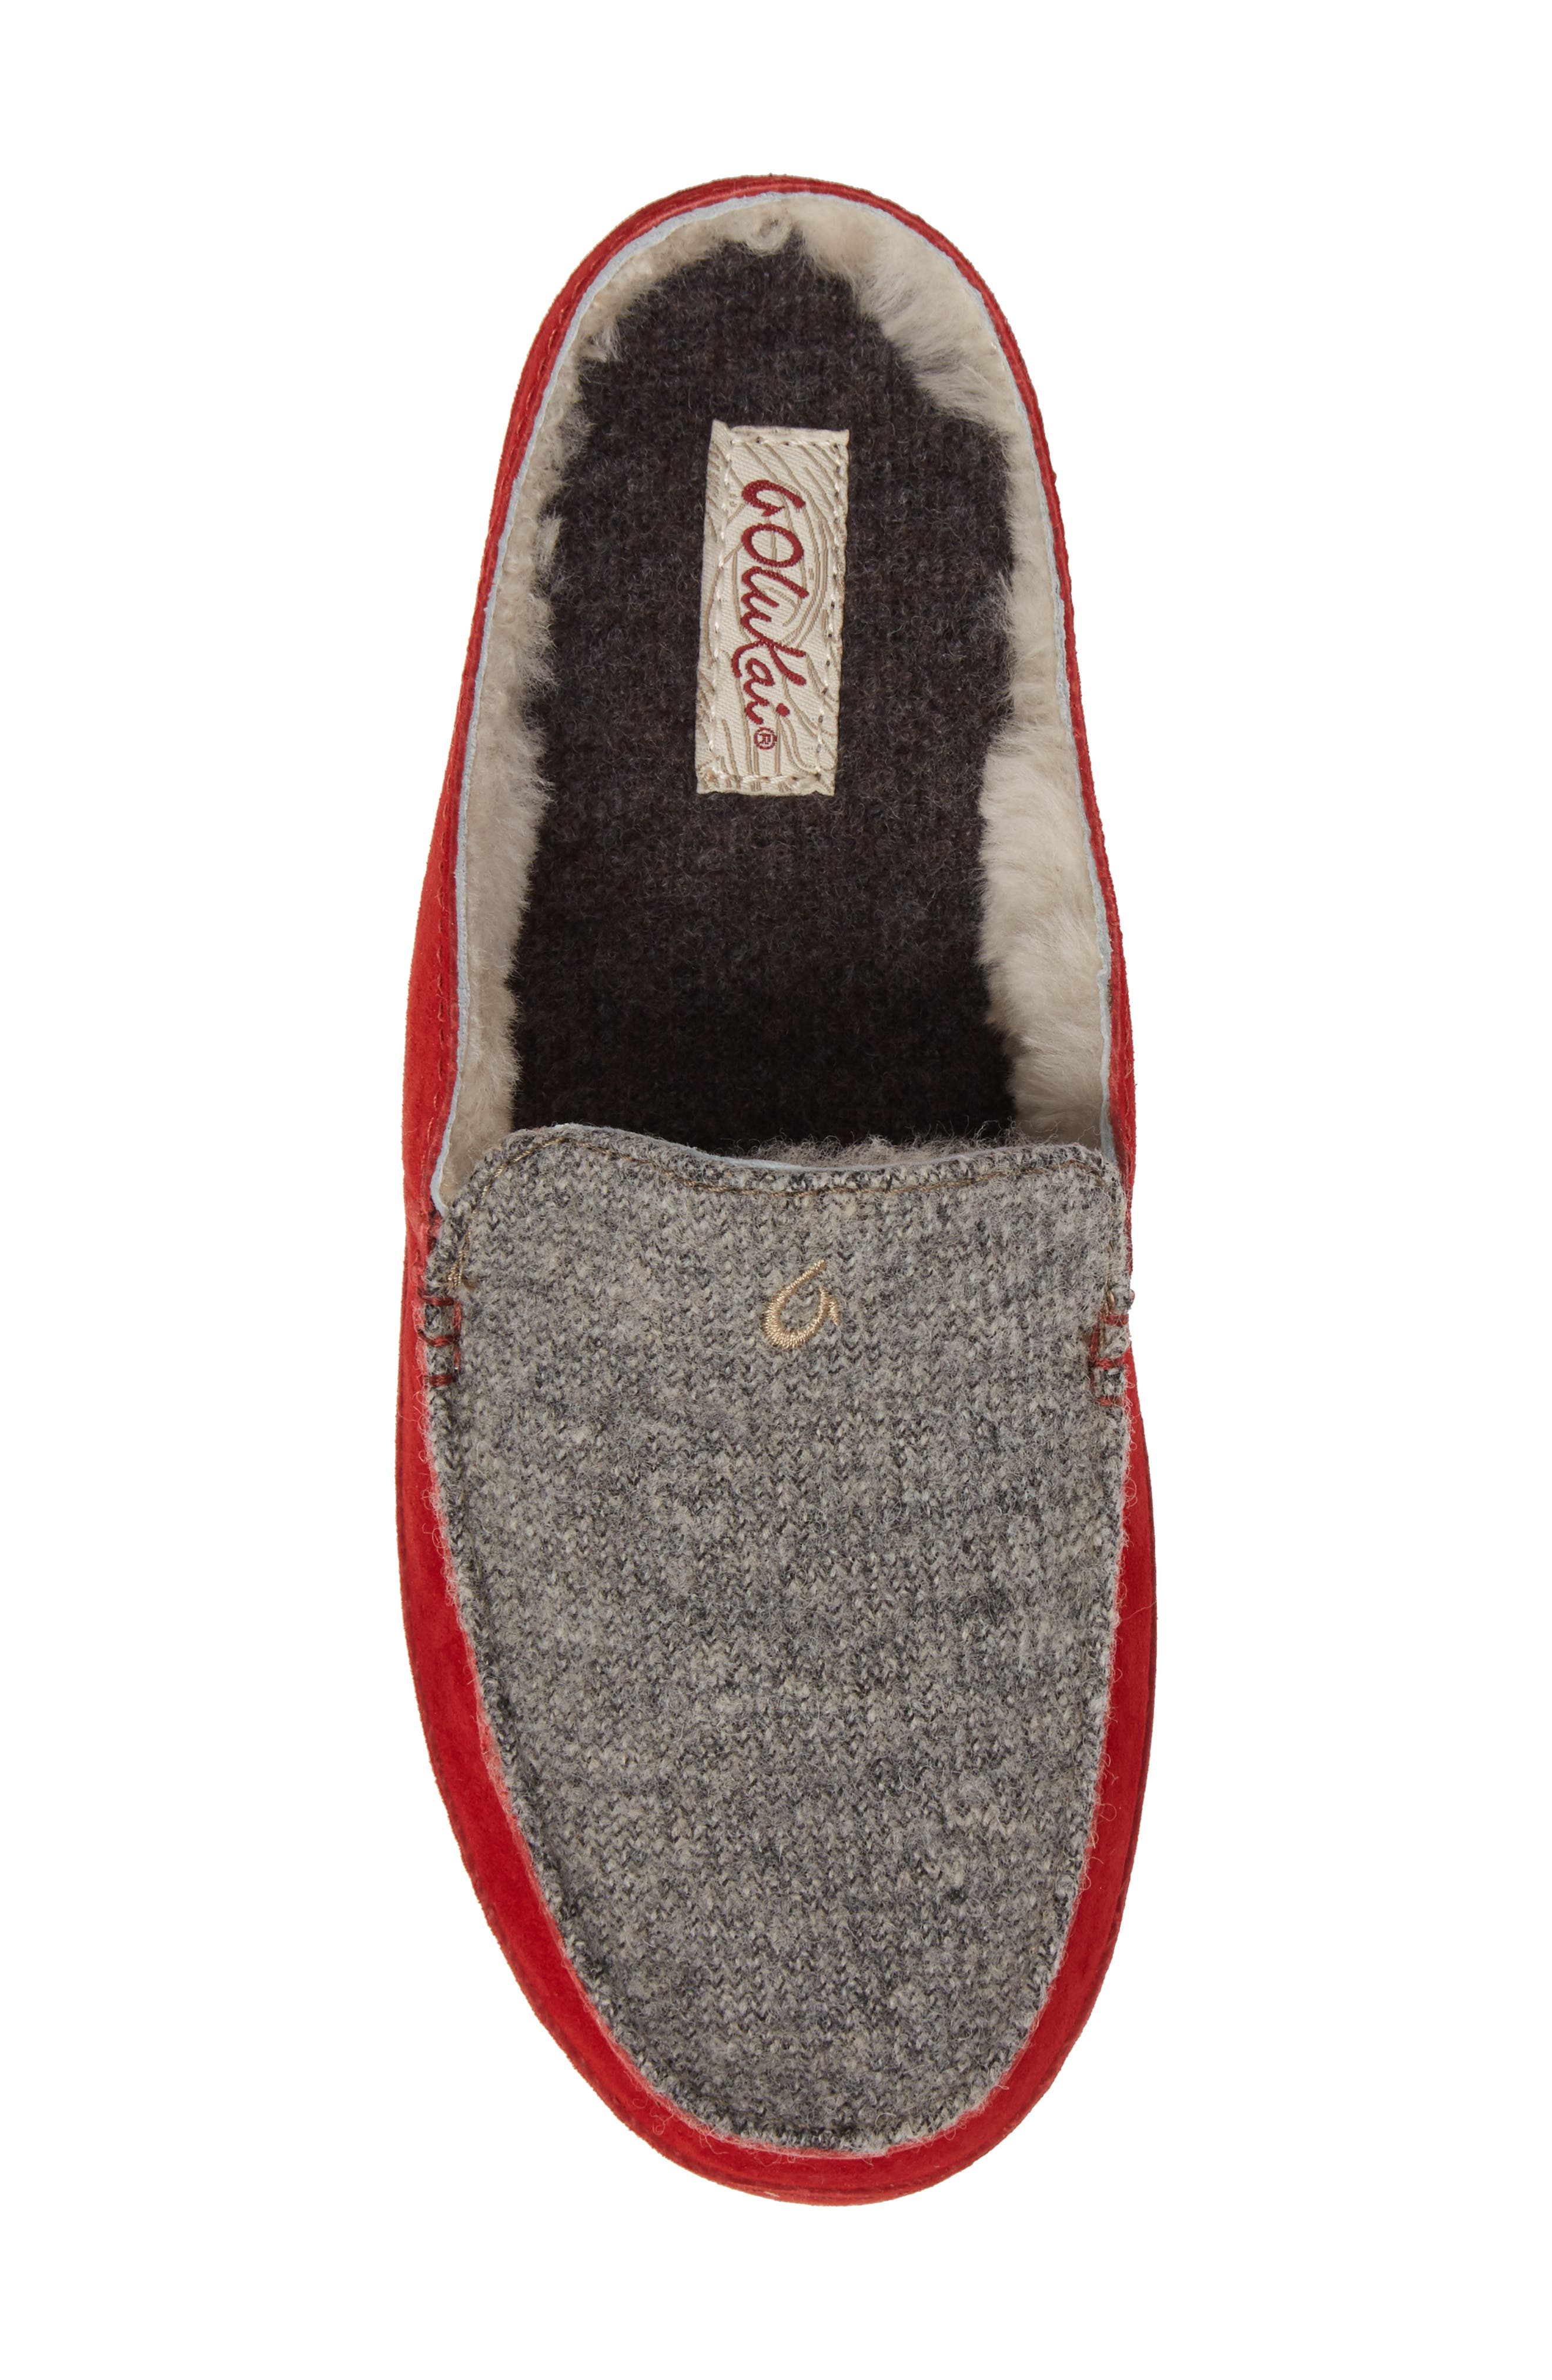 Alaula Genuine Shearling Lined Slipper,                             Alternate thumbnail 5, color,                             Cooler Grey/ Red Mud Leather